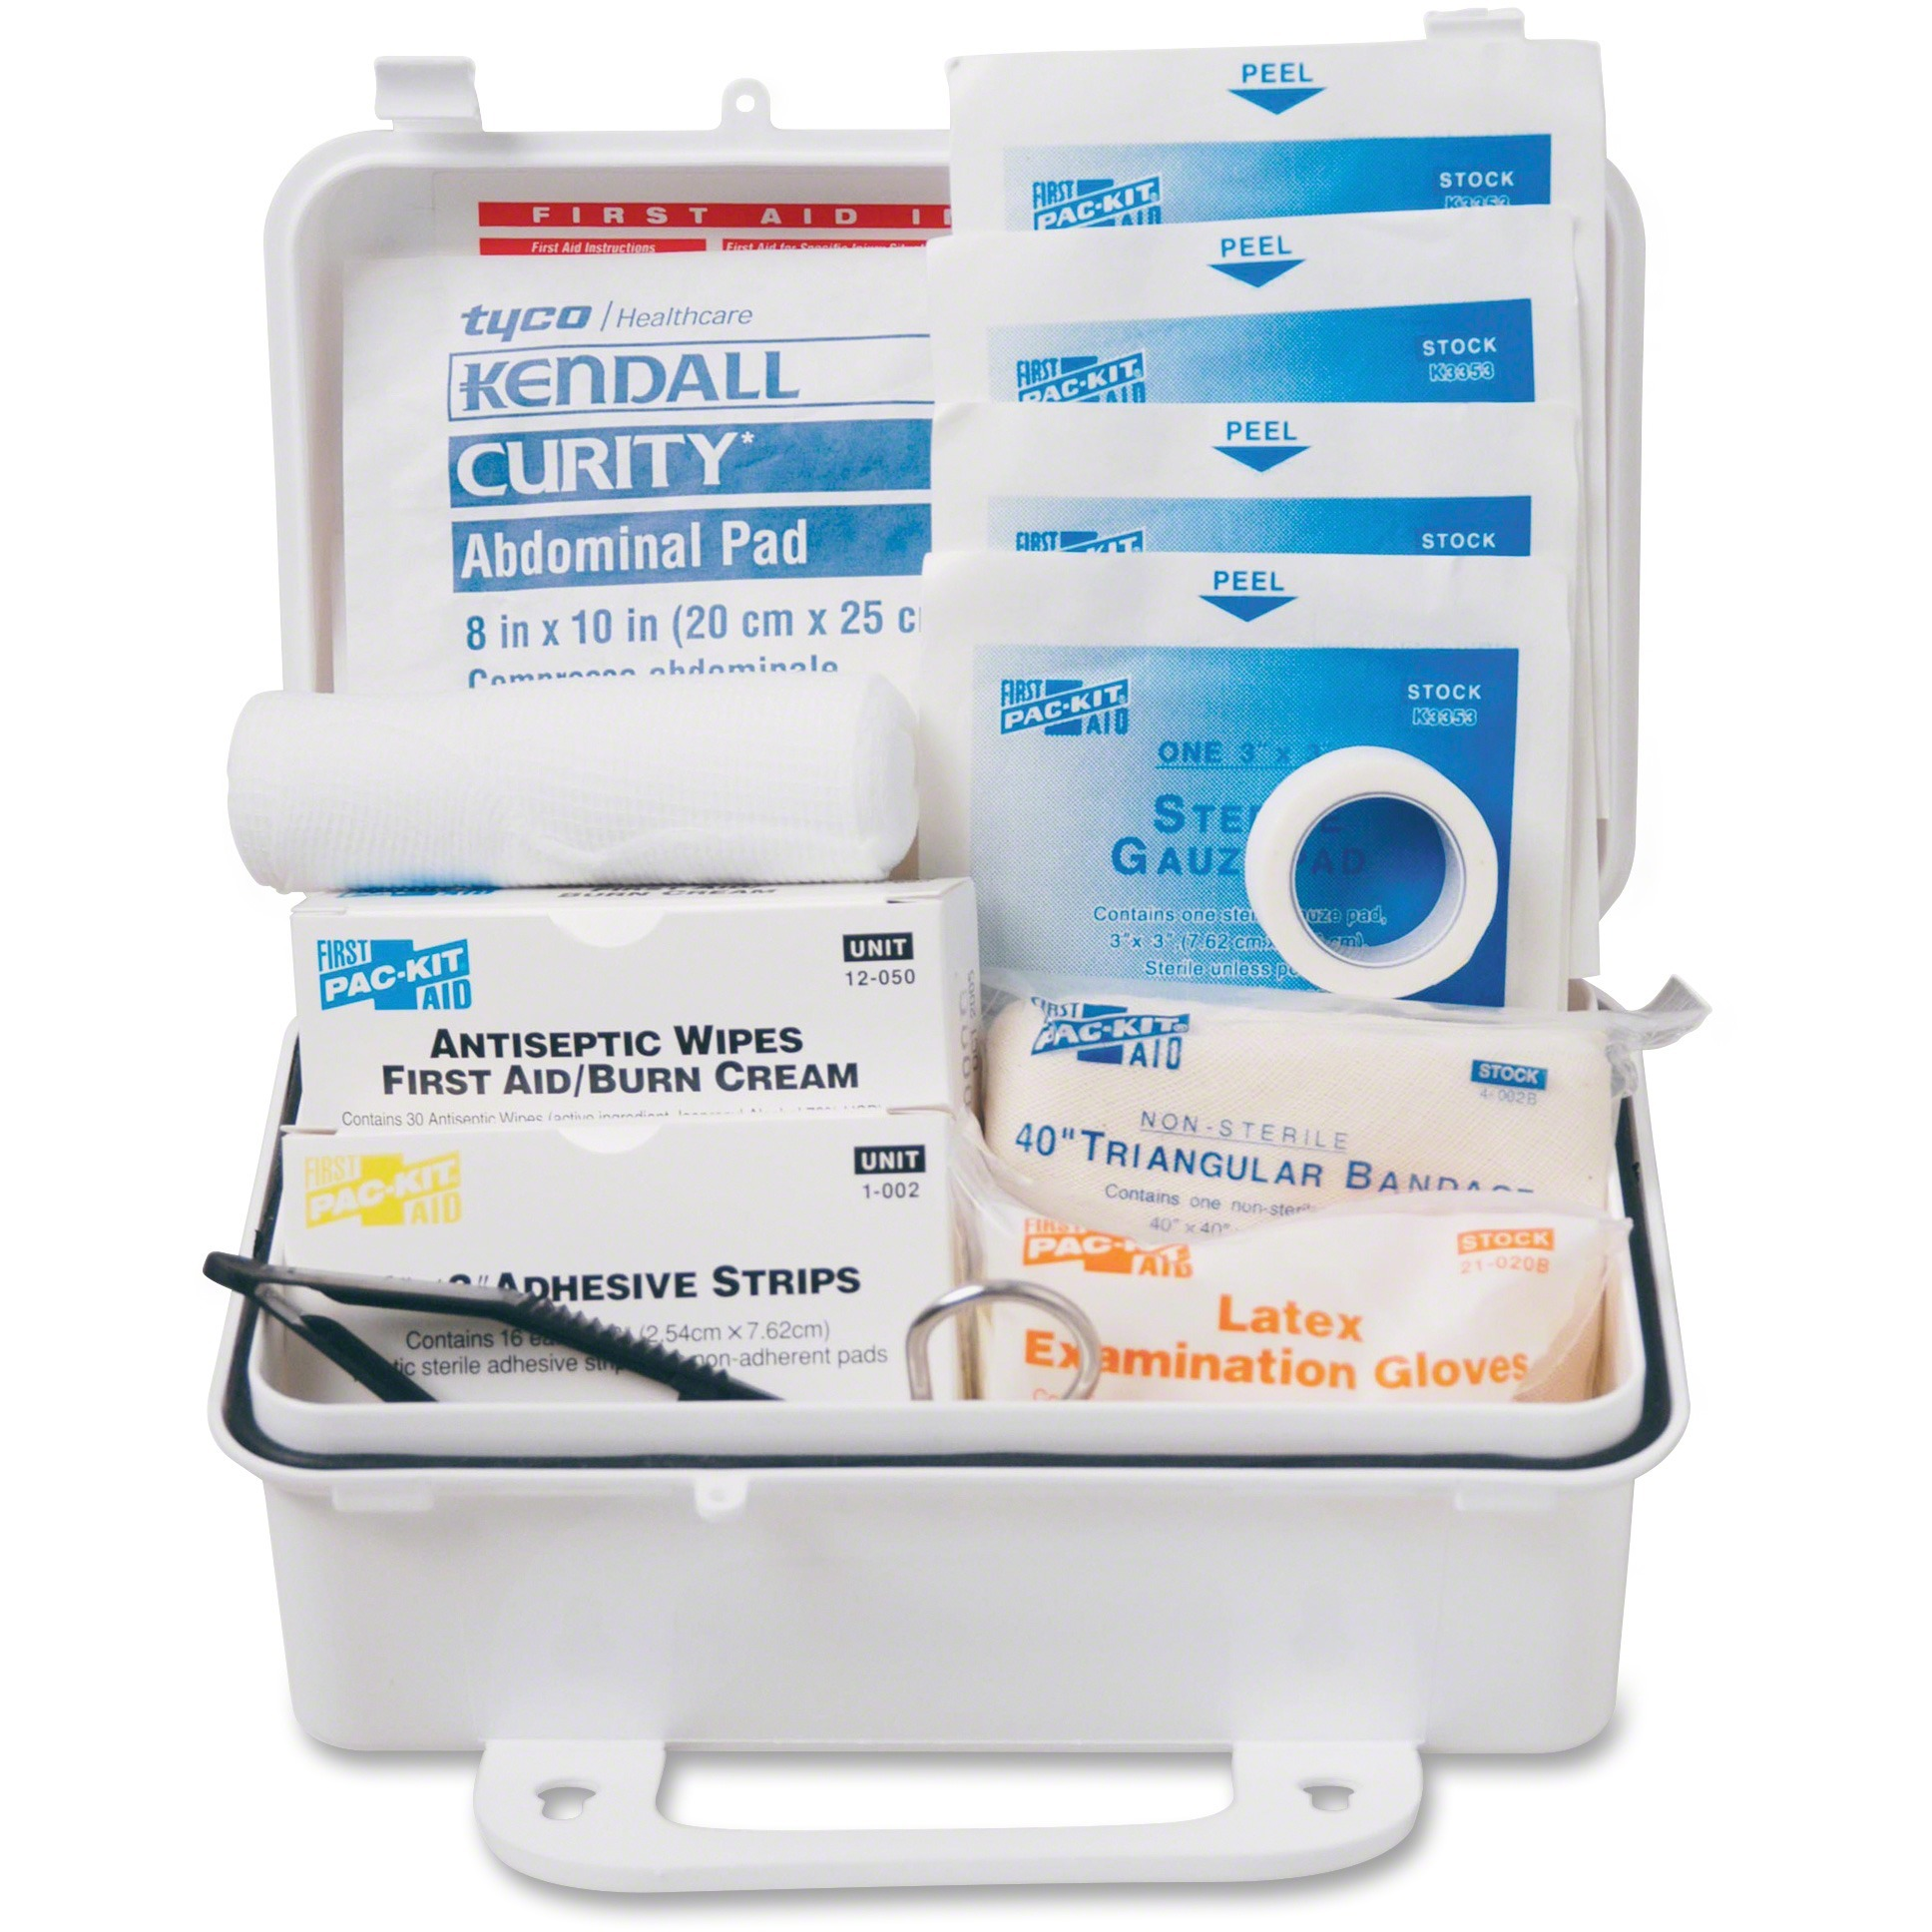 Pac-Kit, PKT6060, Safety Equipment 10-person First Aid Kit, 1 / Kit, White